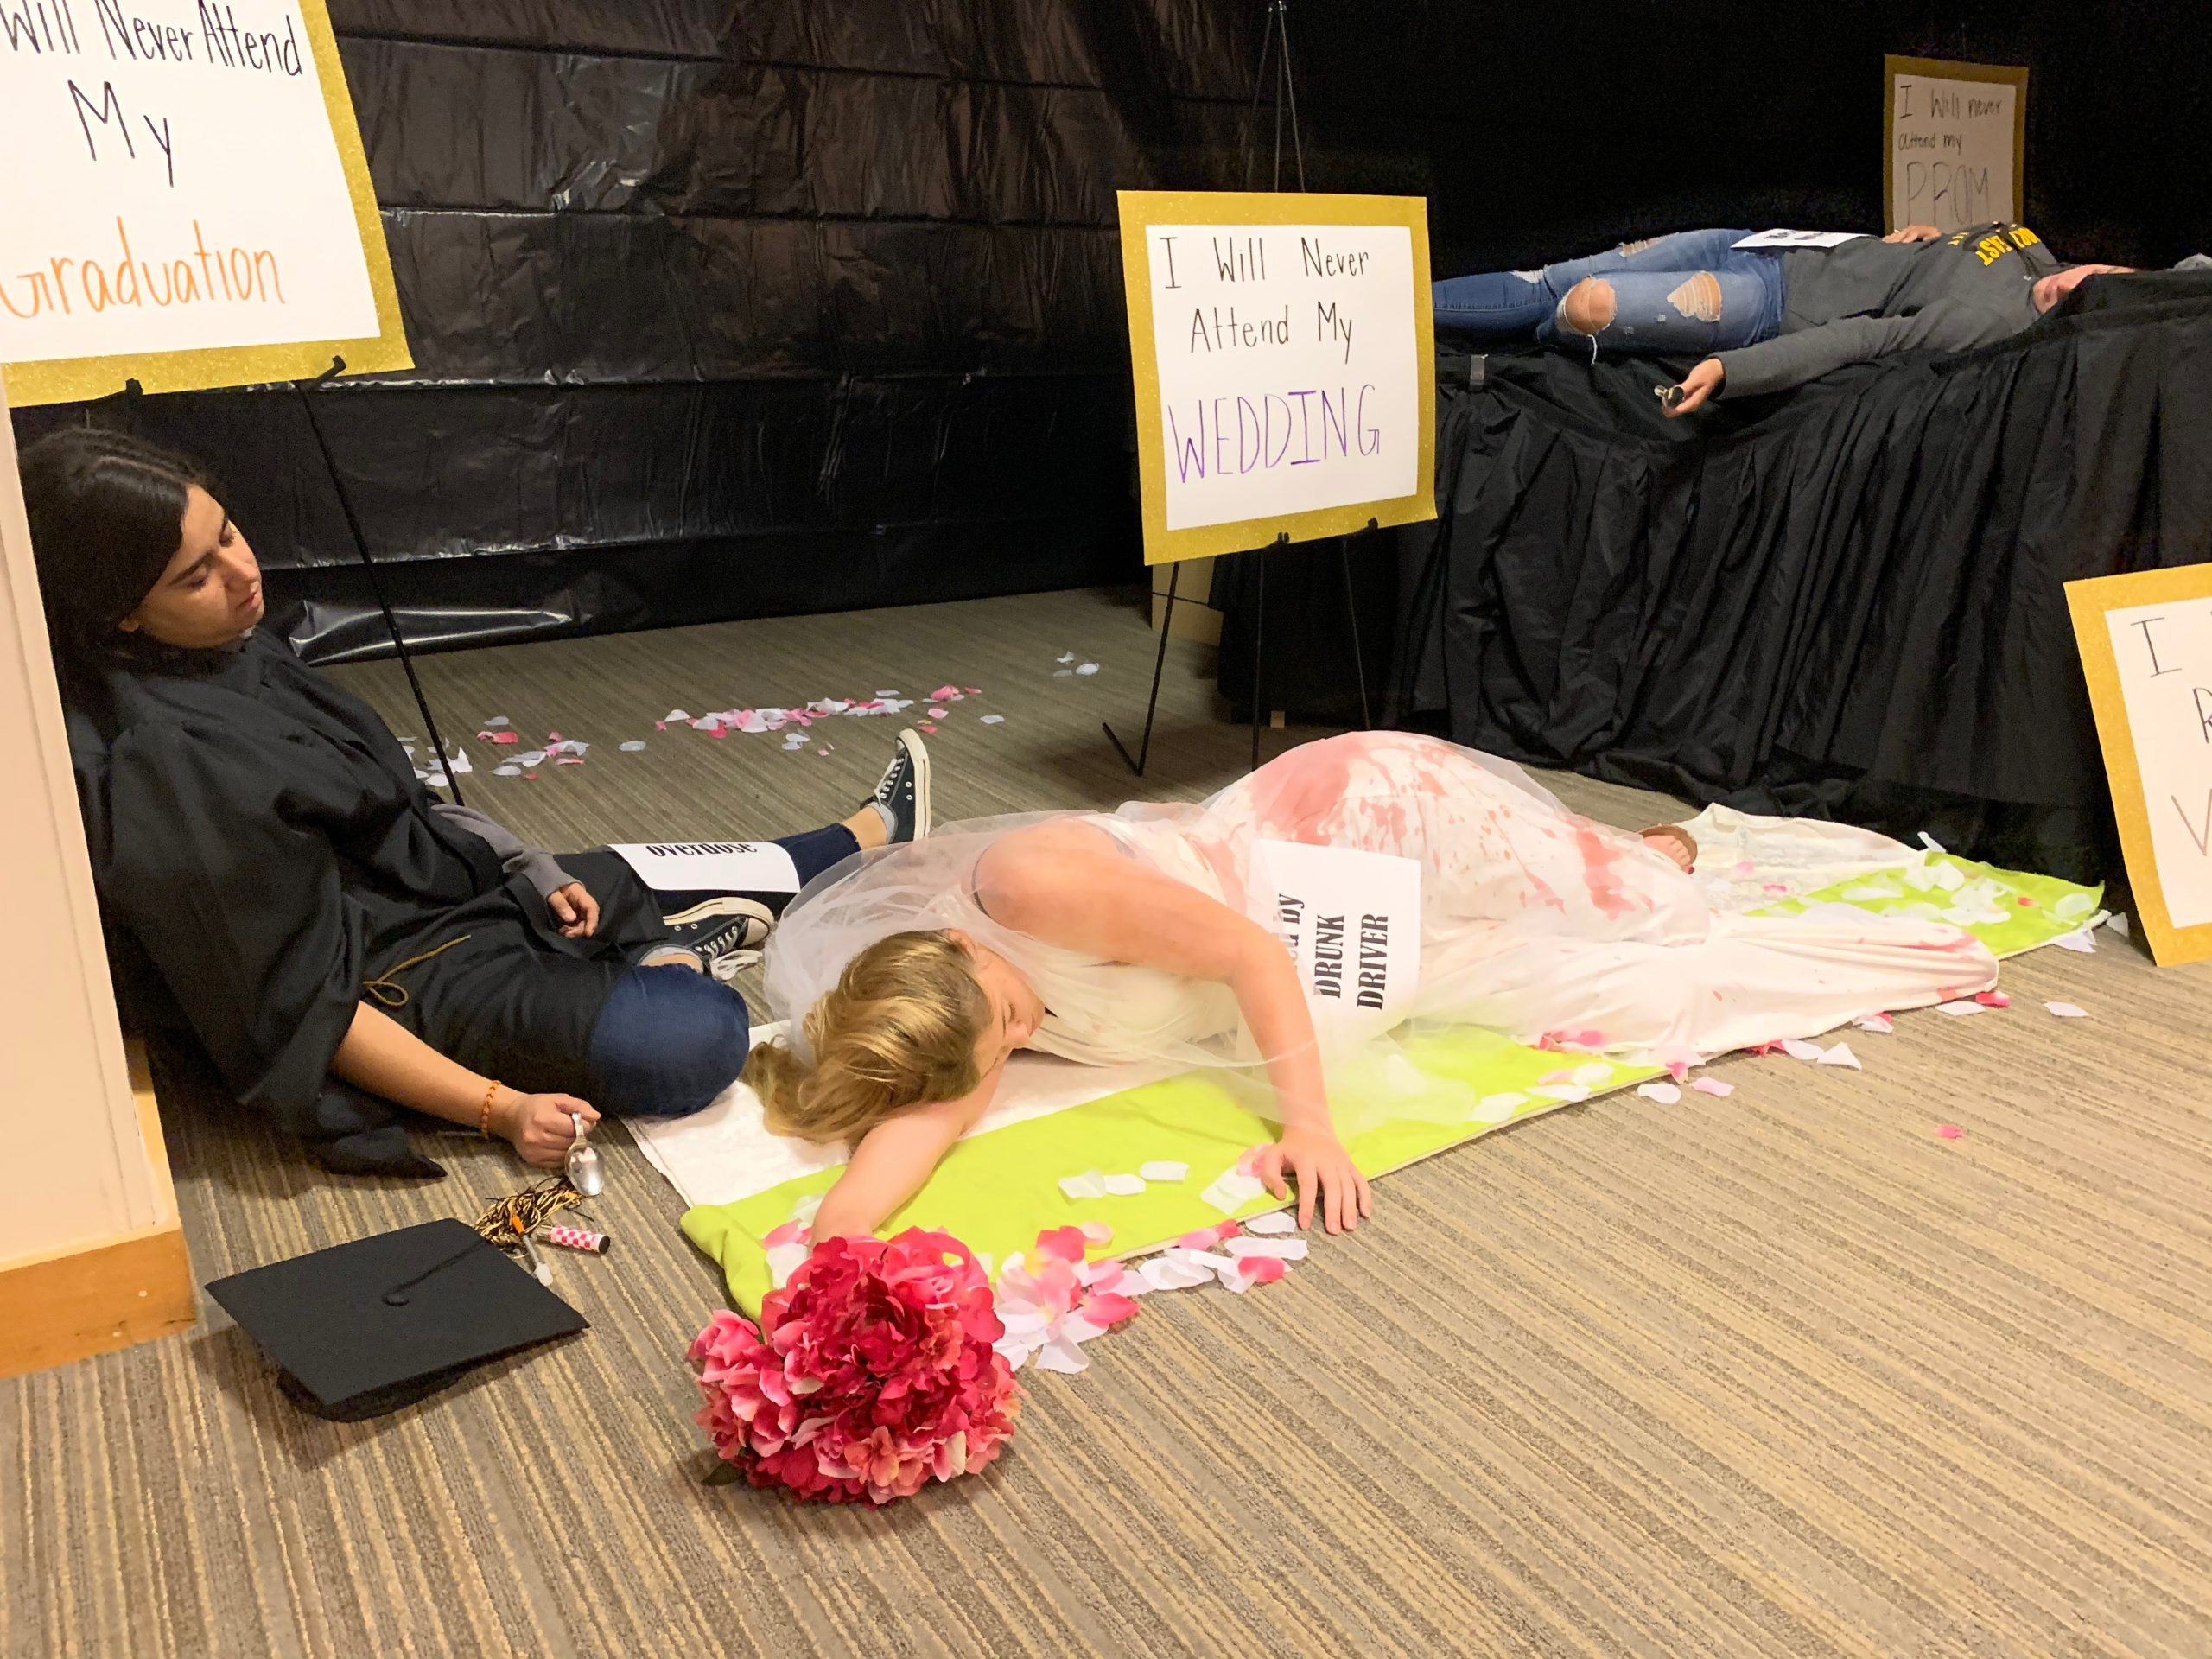 Northeast High School Change Project Human experience